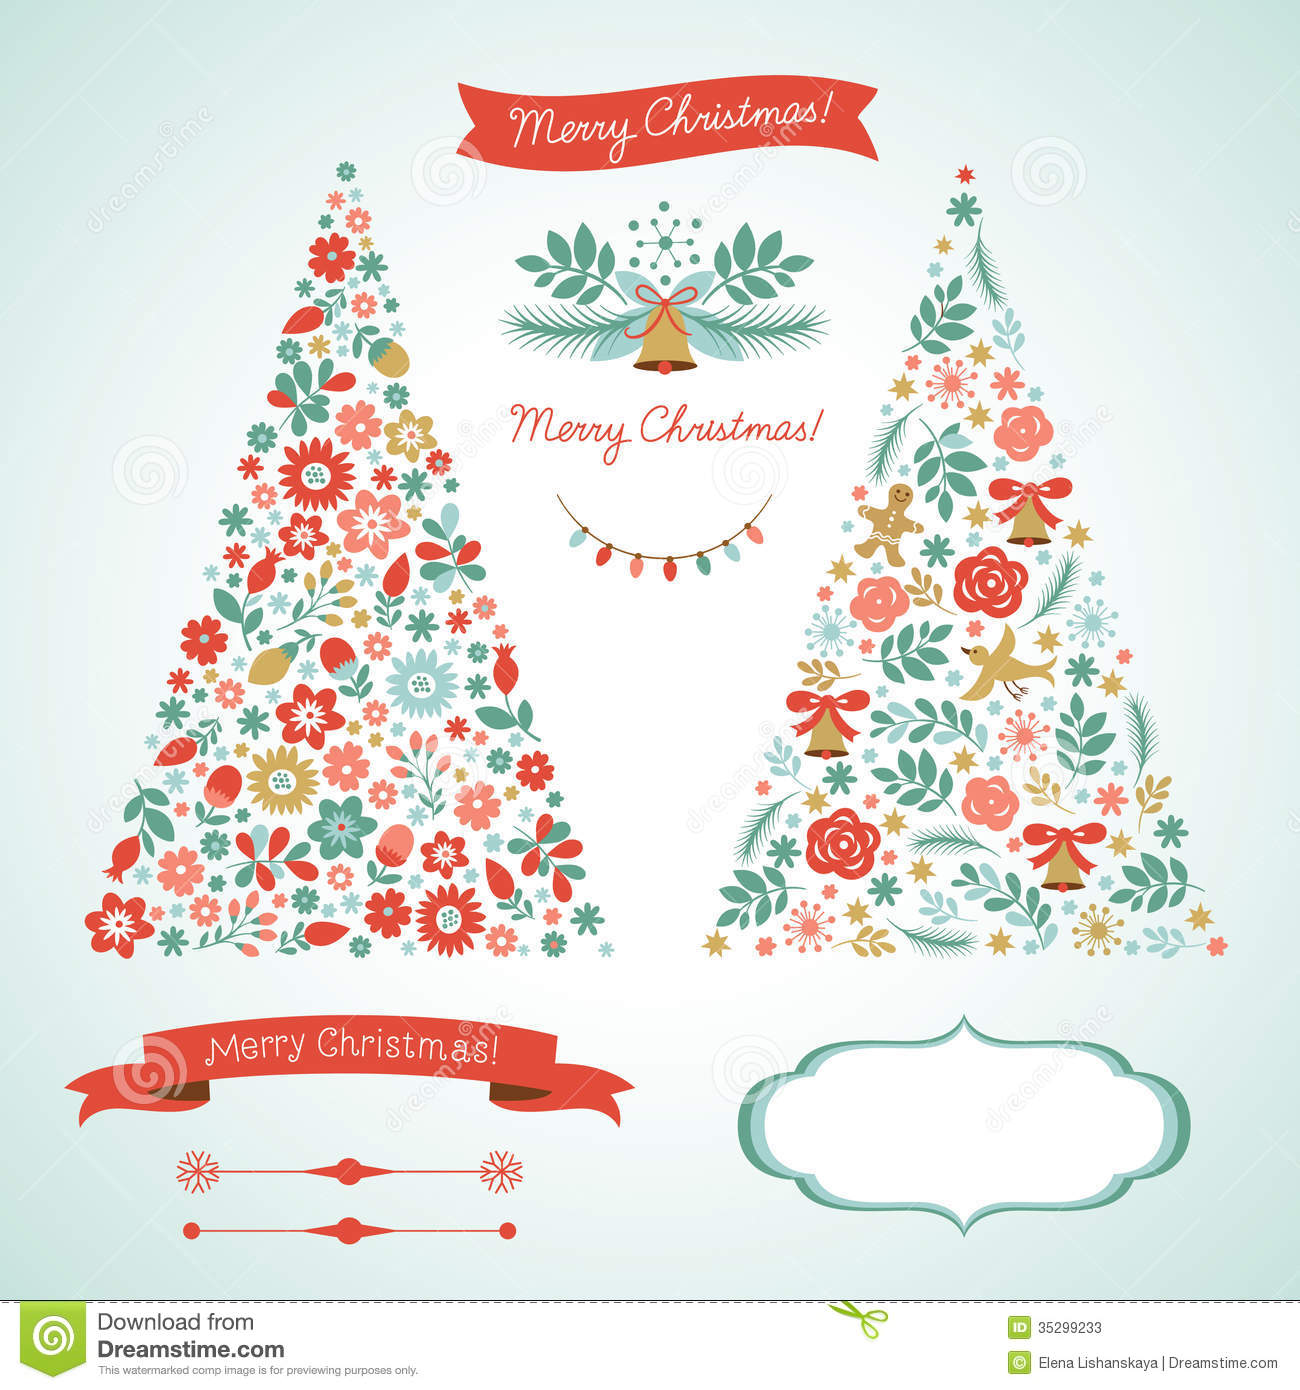 Christmas Tree Decoration Elements: Christmas Trees And Graphic Elements Stock Vector